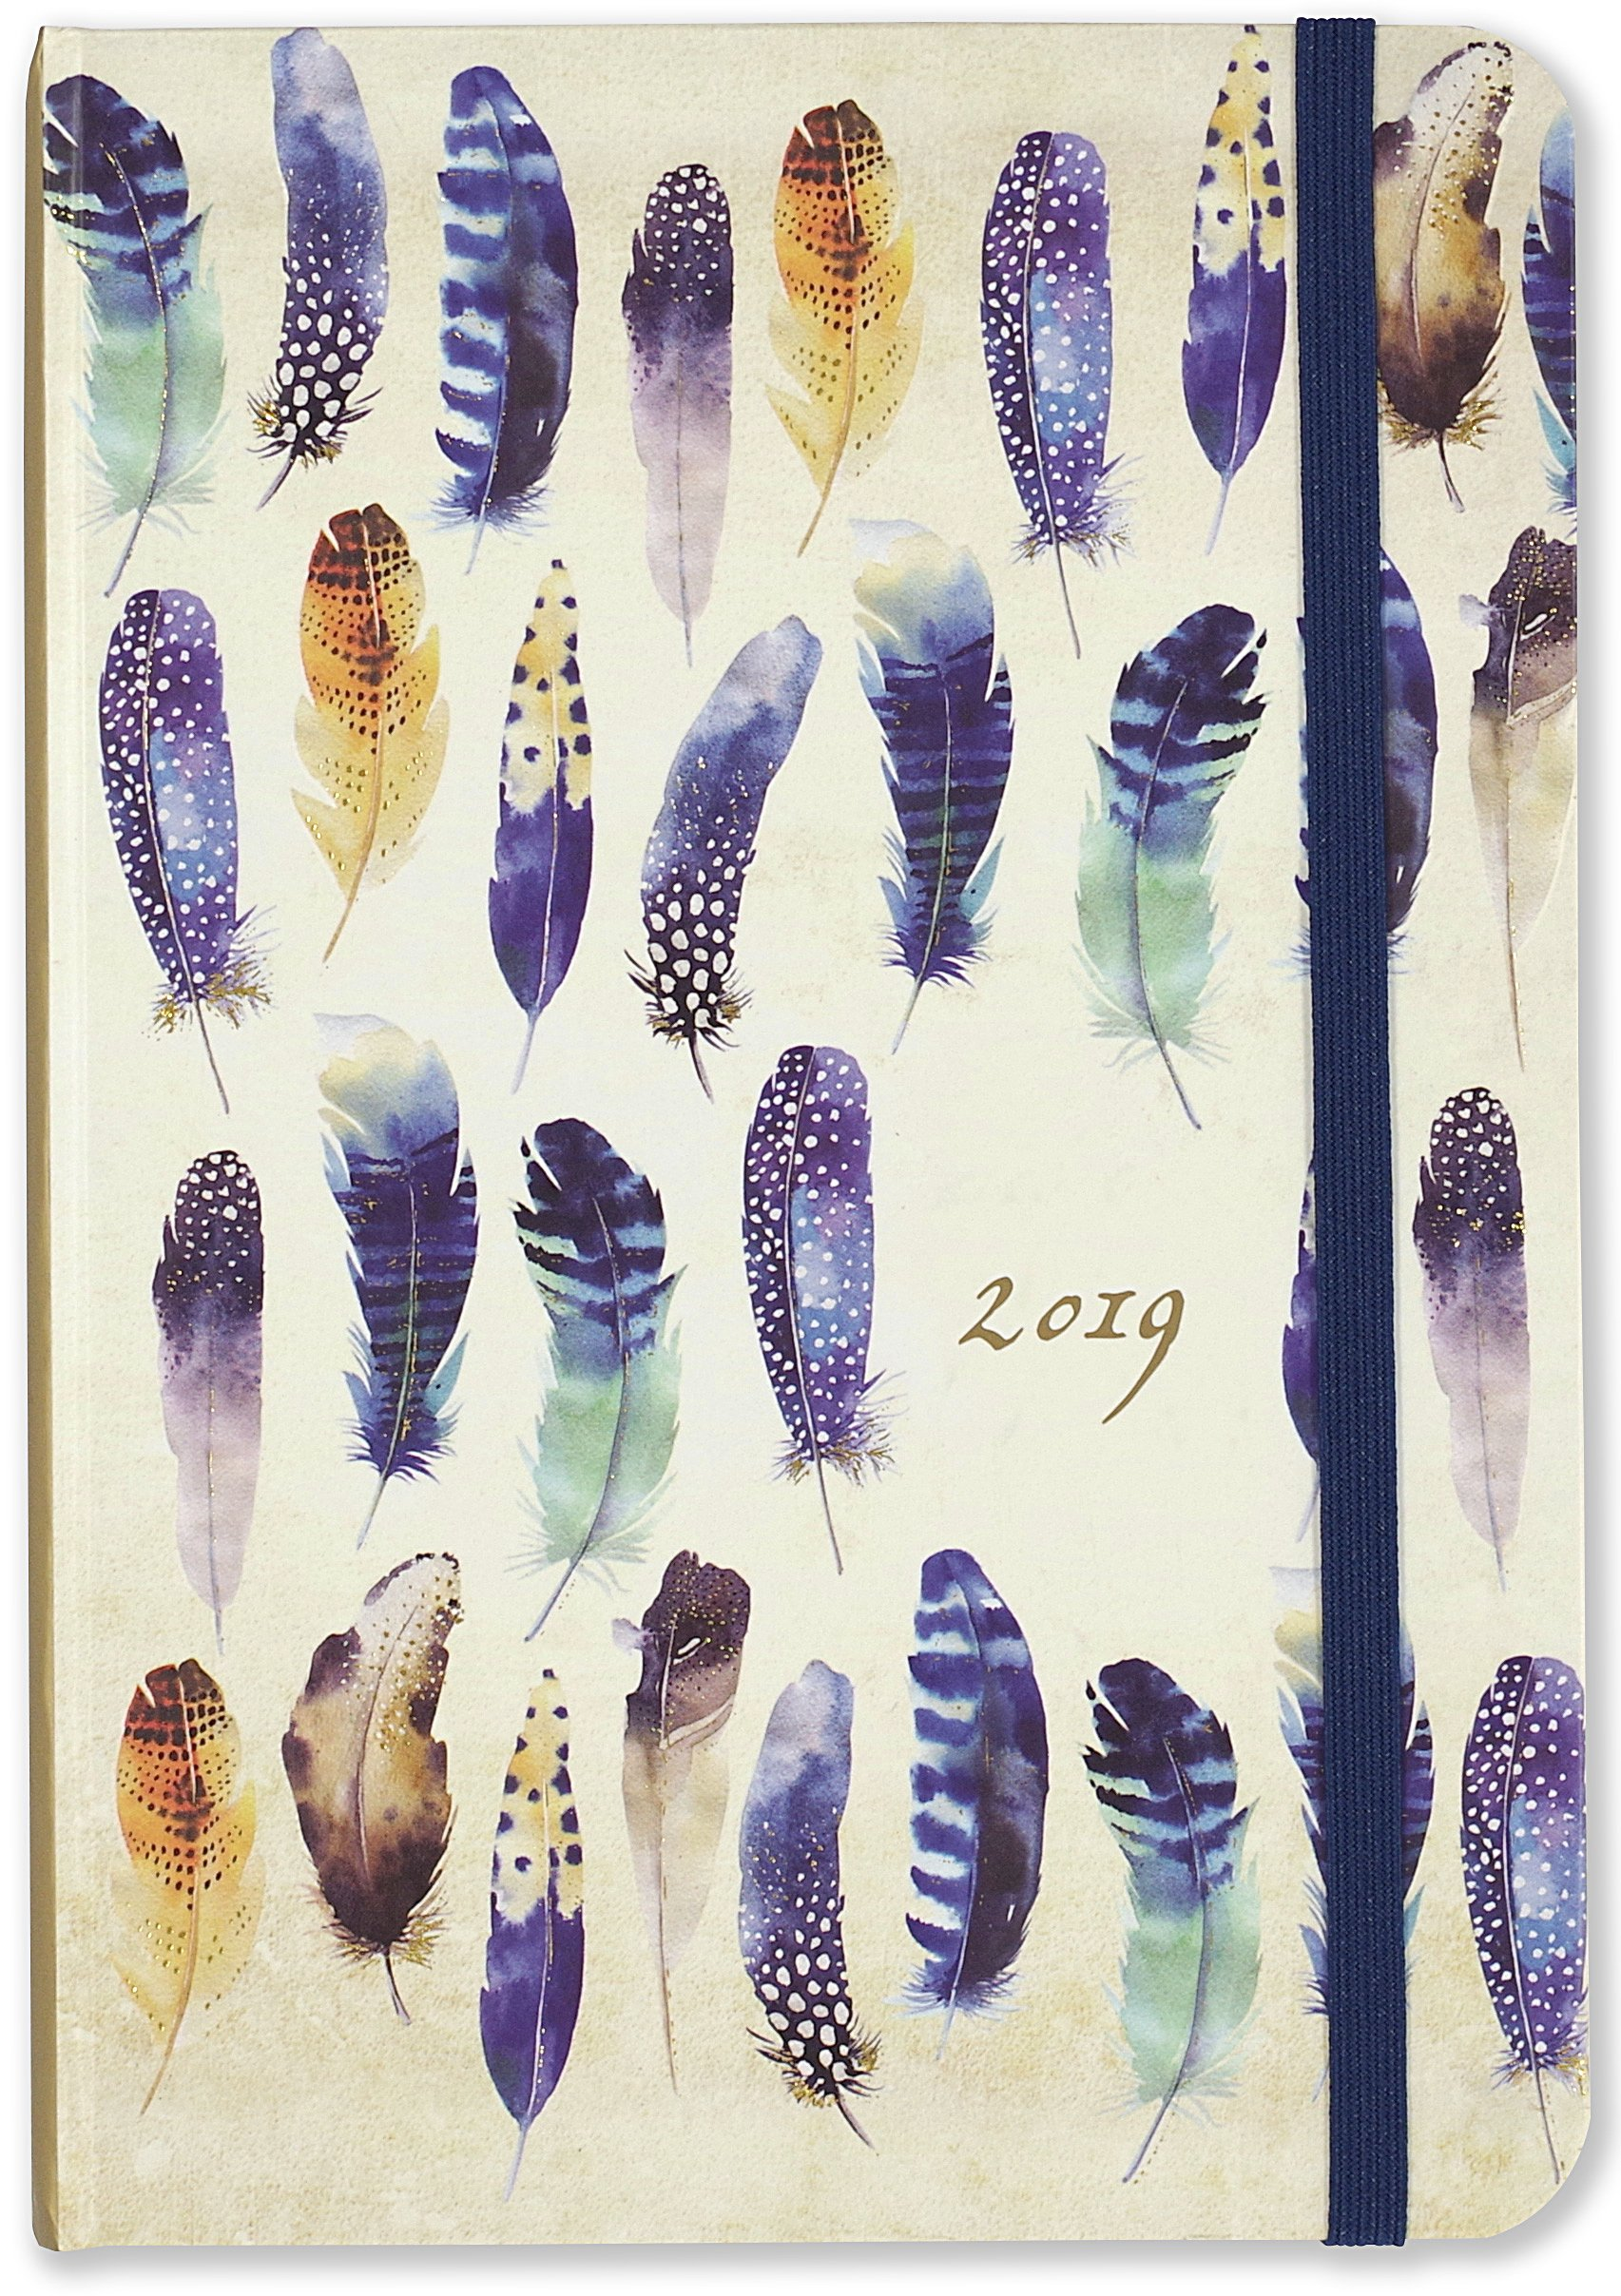 2019 Watercolor Feathers Weekly Planner (16-Month Engagement Calendar) PDF